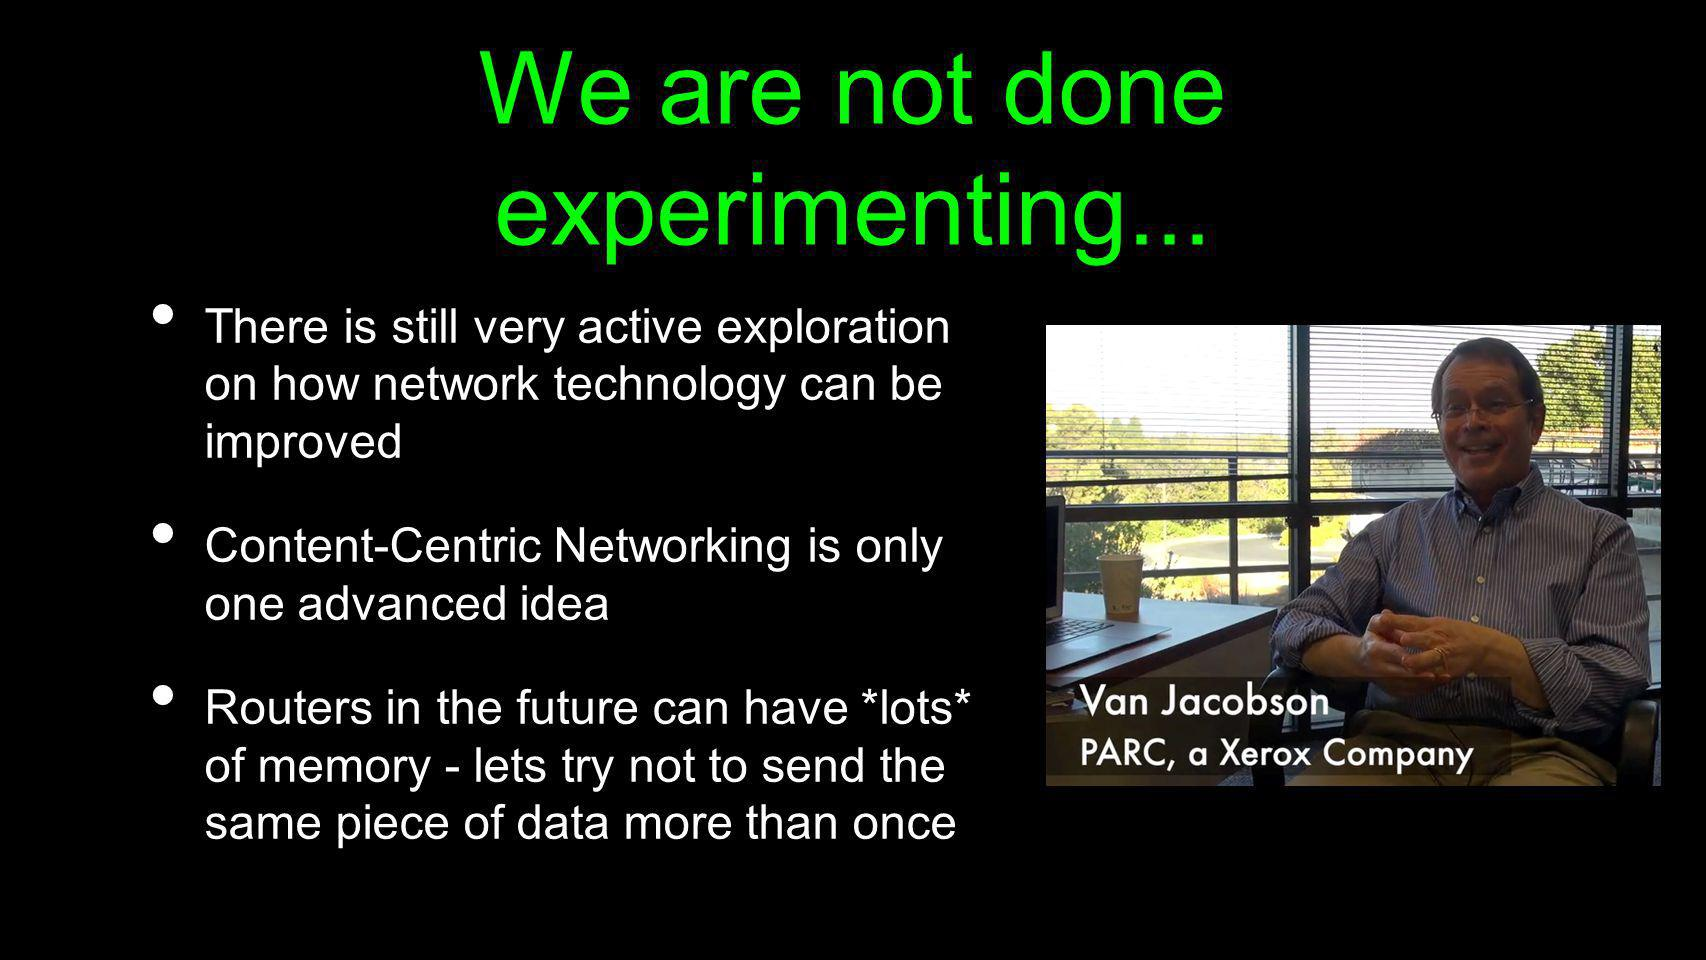 We are not done experimenting...